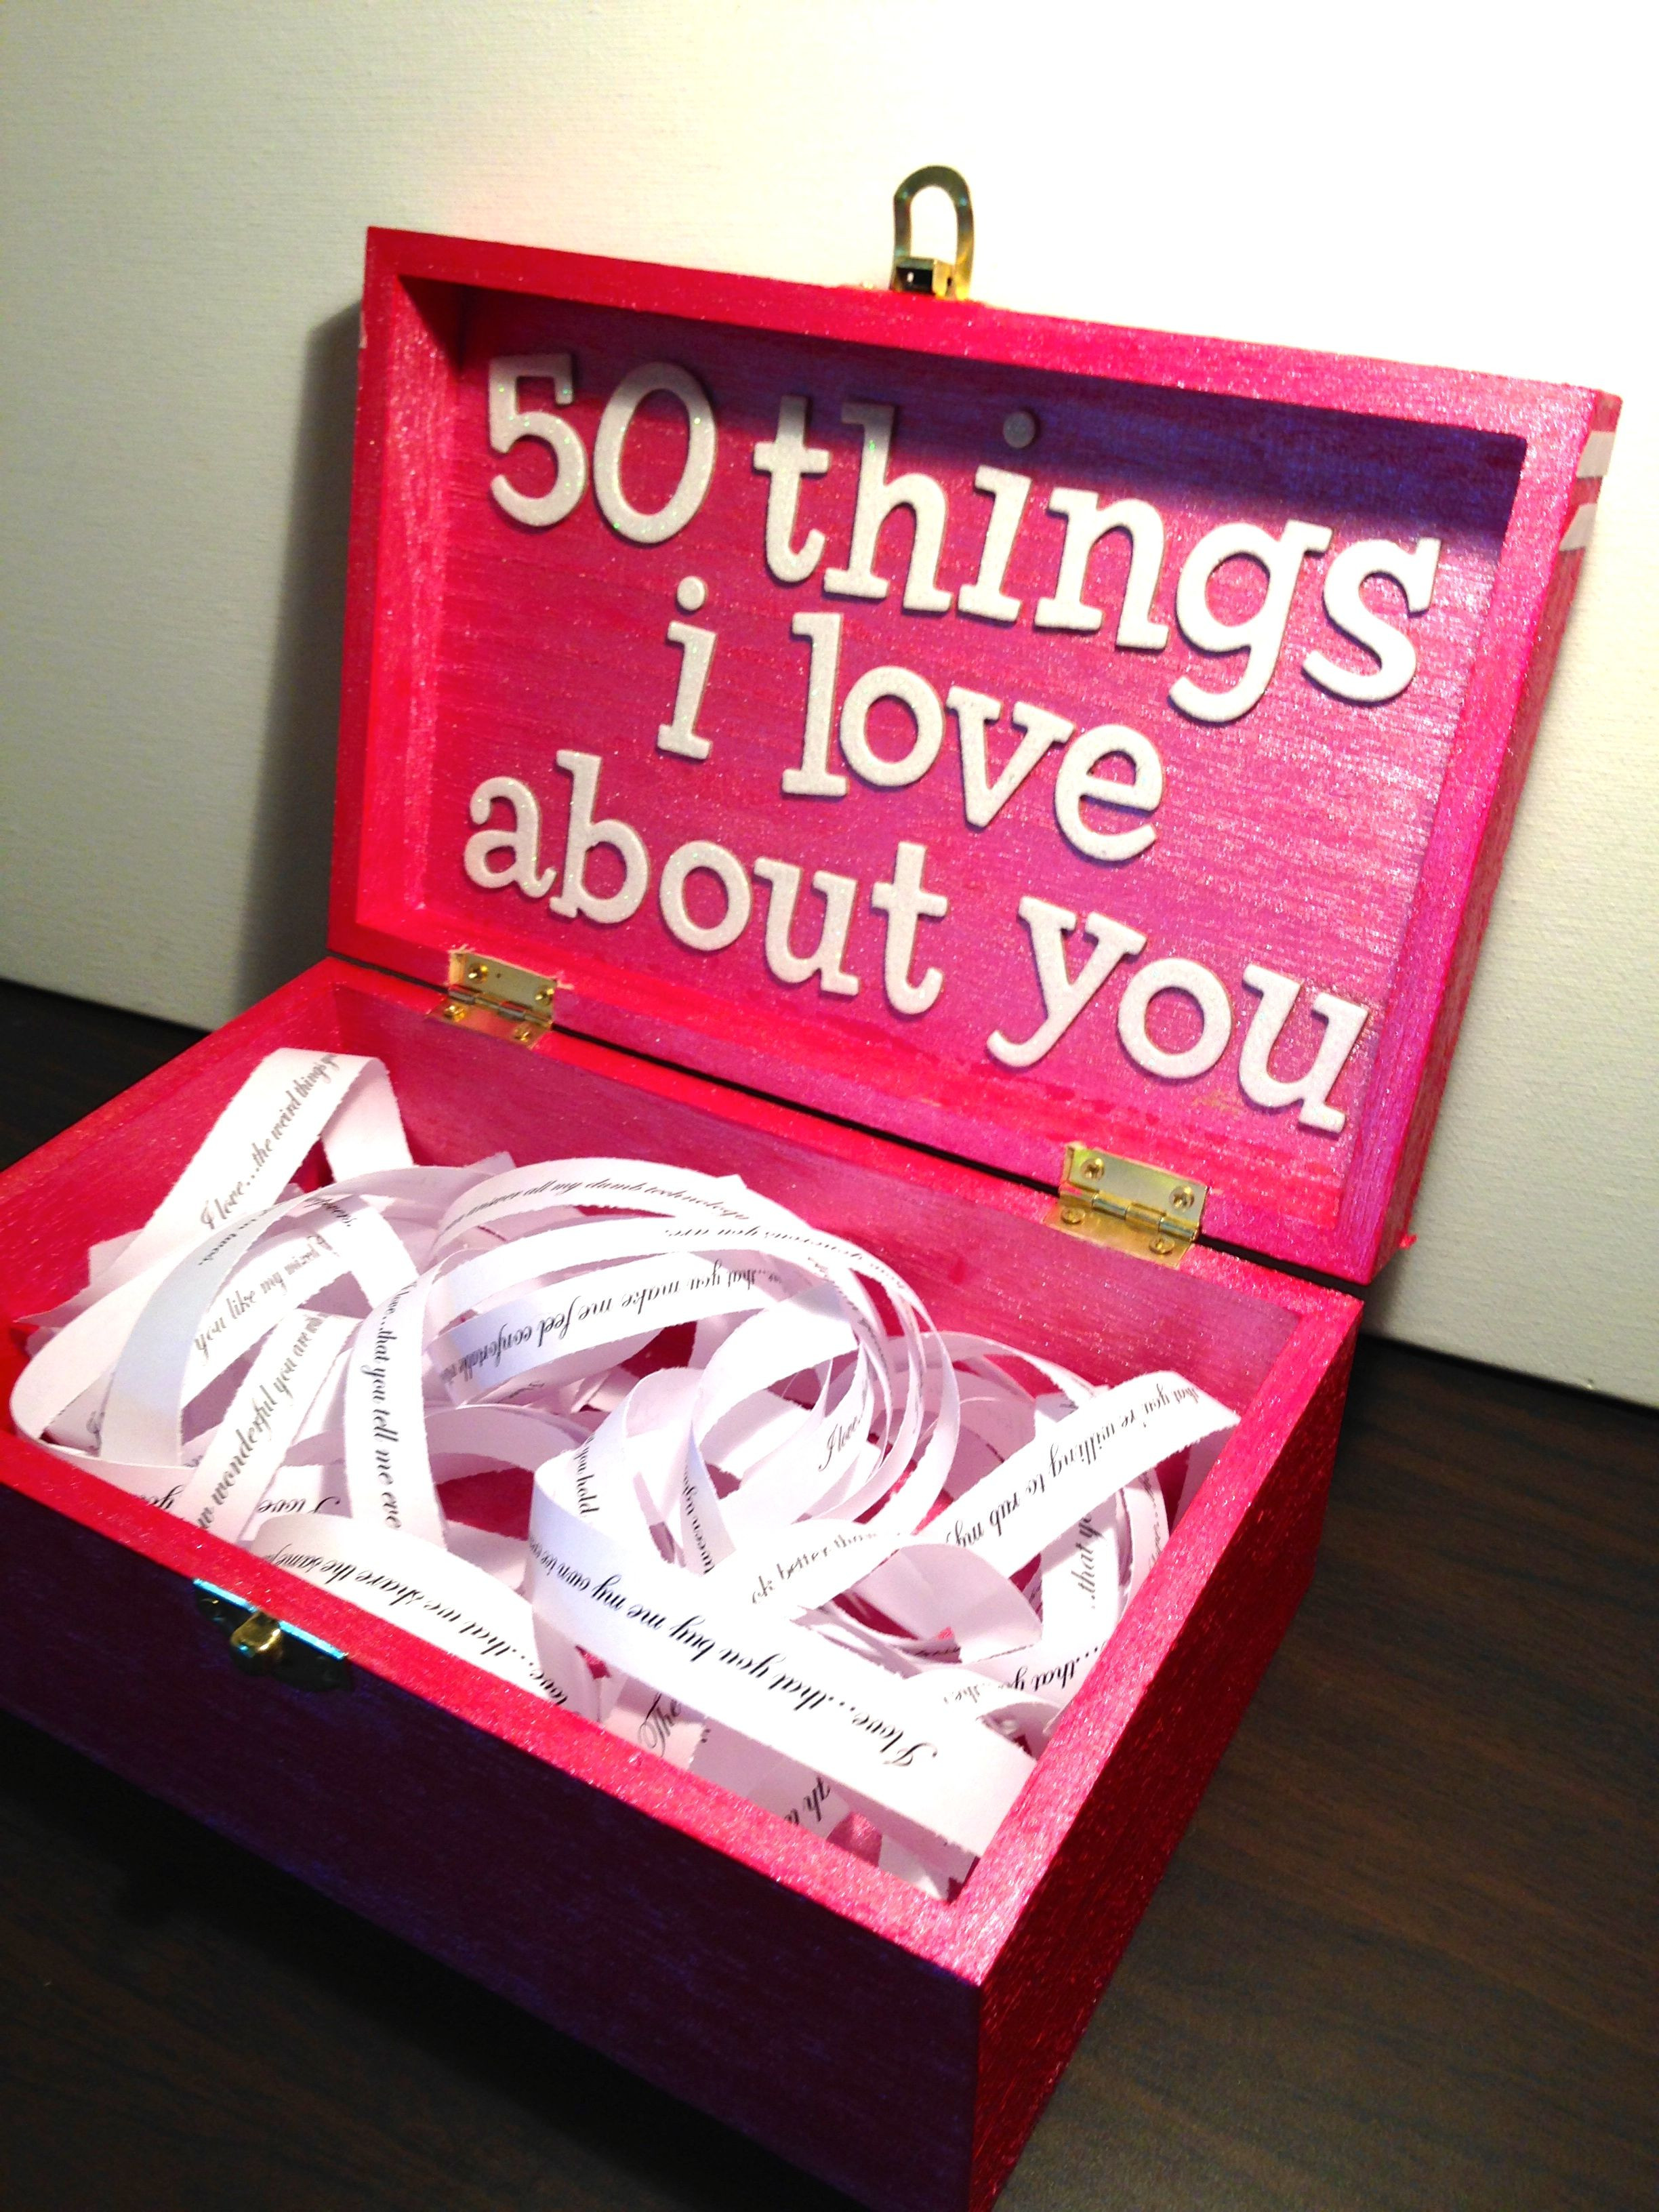 Best ideas about Simple Gift Ideas For Girlfriend . Save or Pin Boyfriend Girlfriend t ideas for birthday valentine Now.